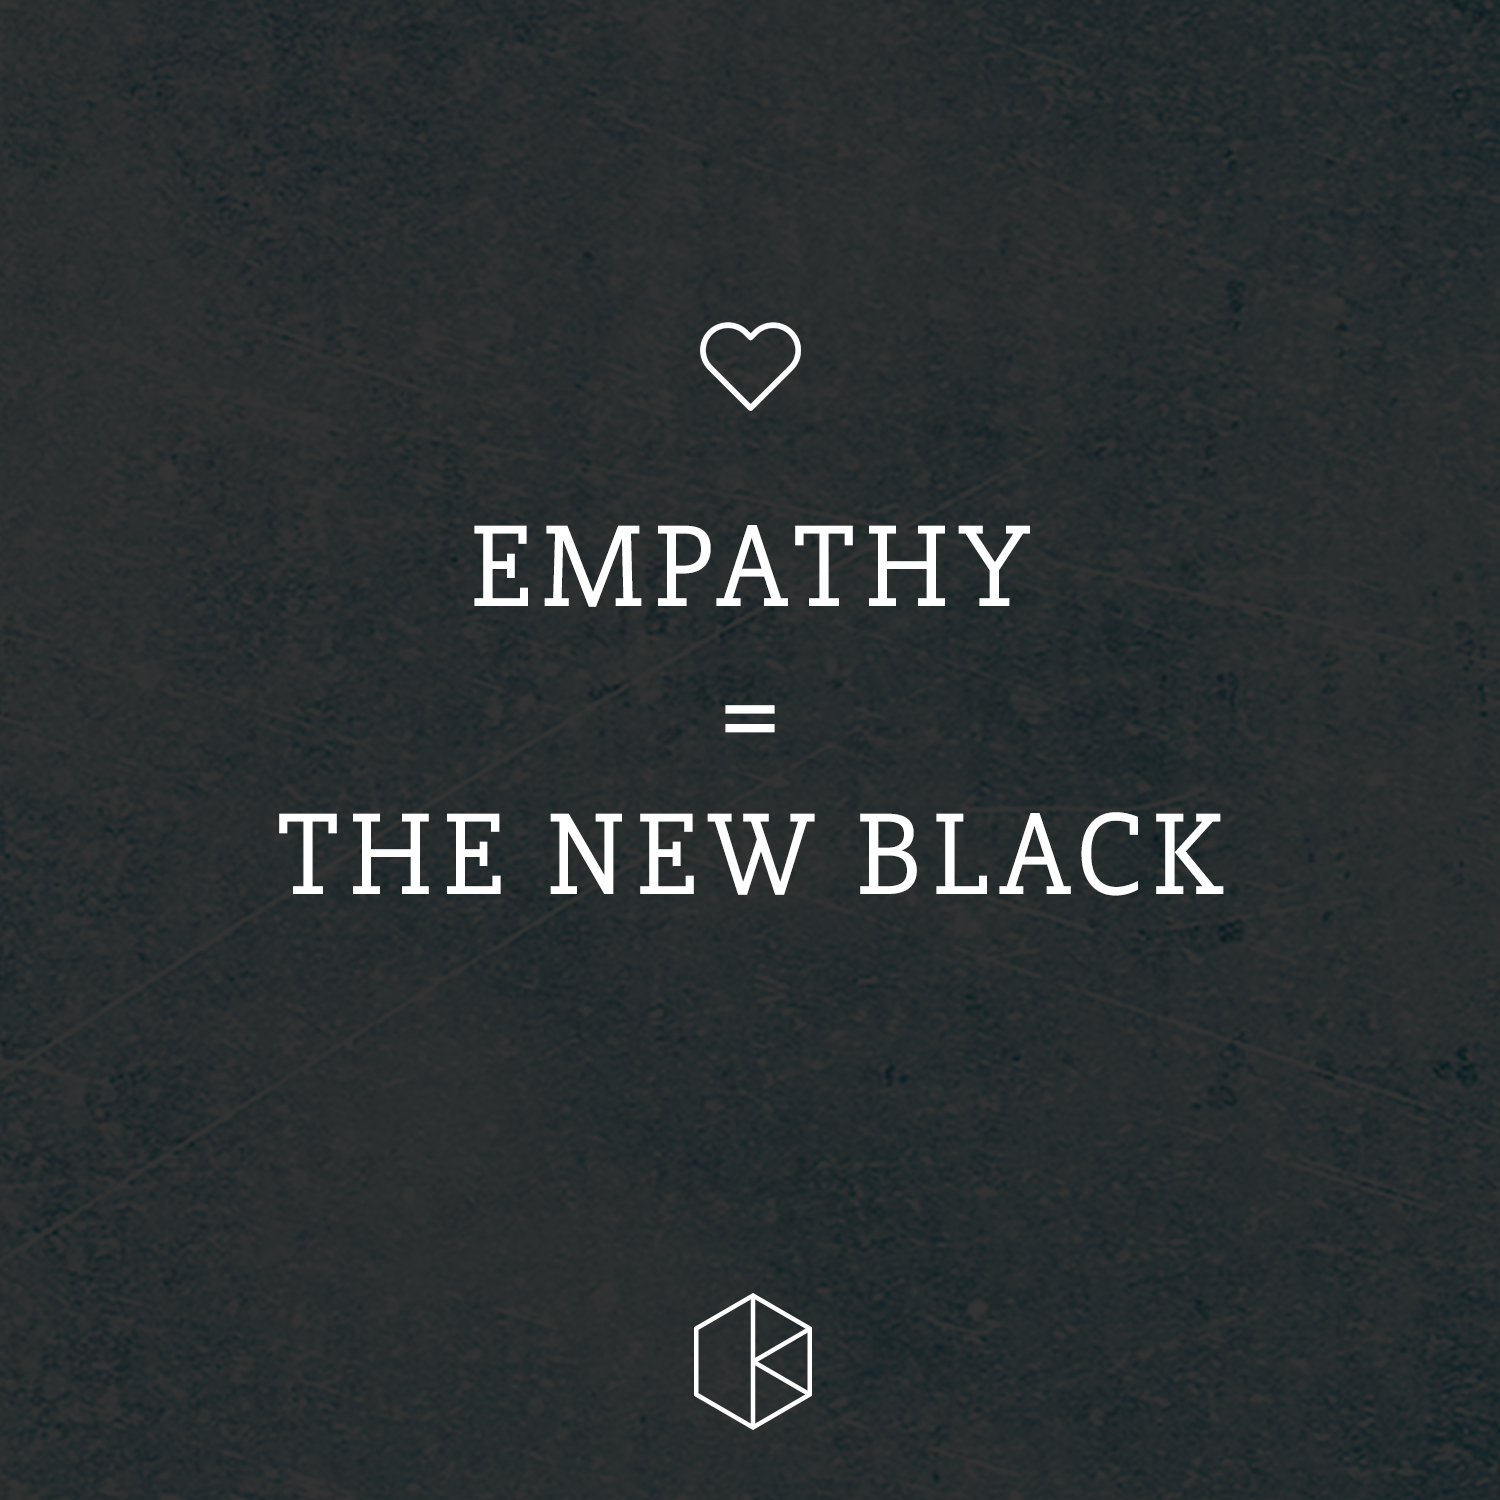 Empathy = The New Black